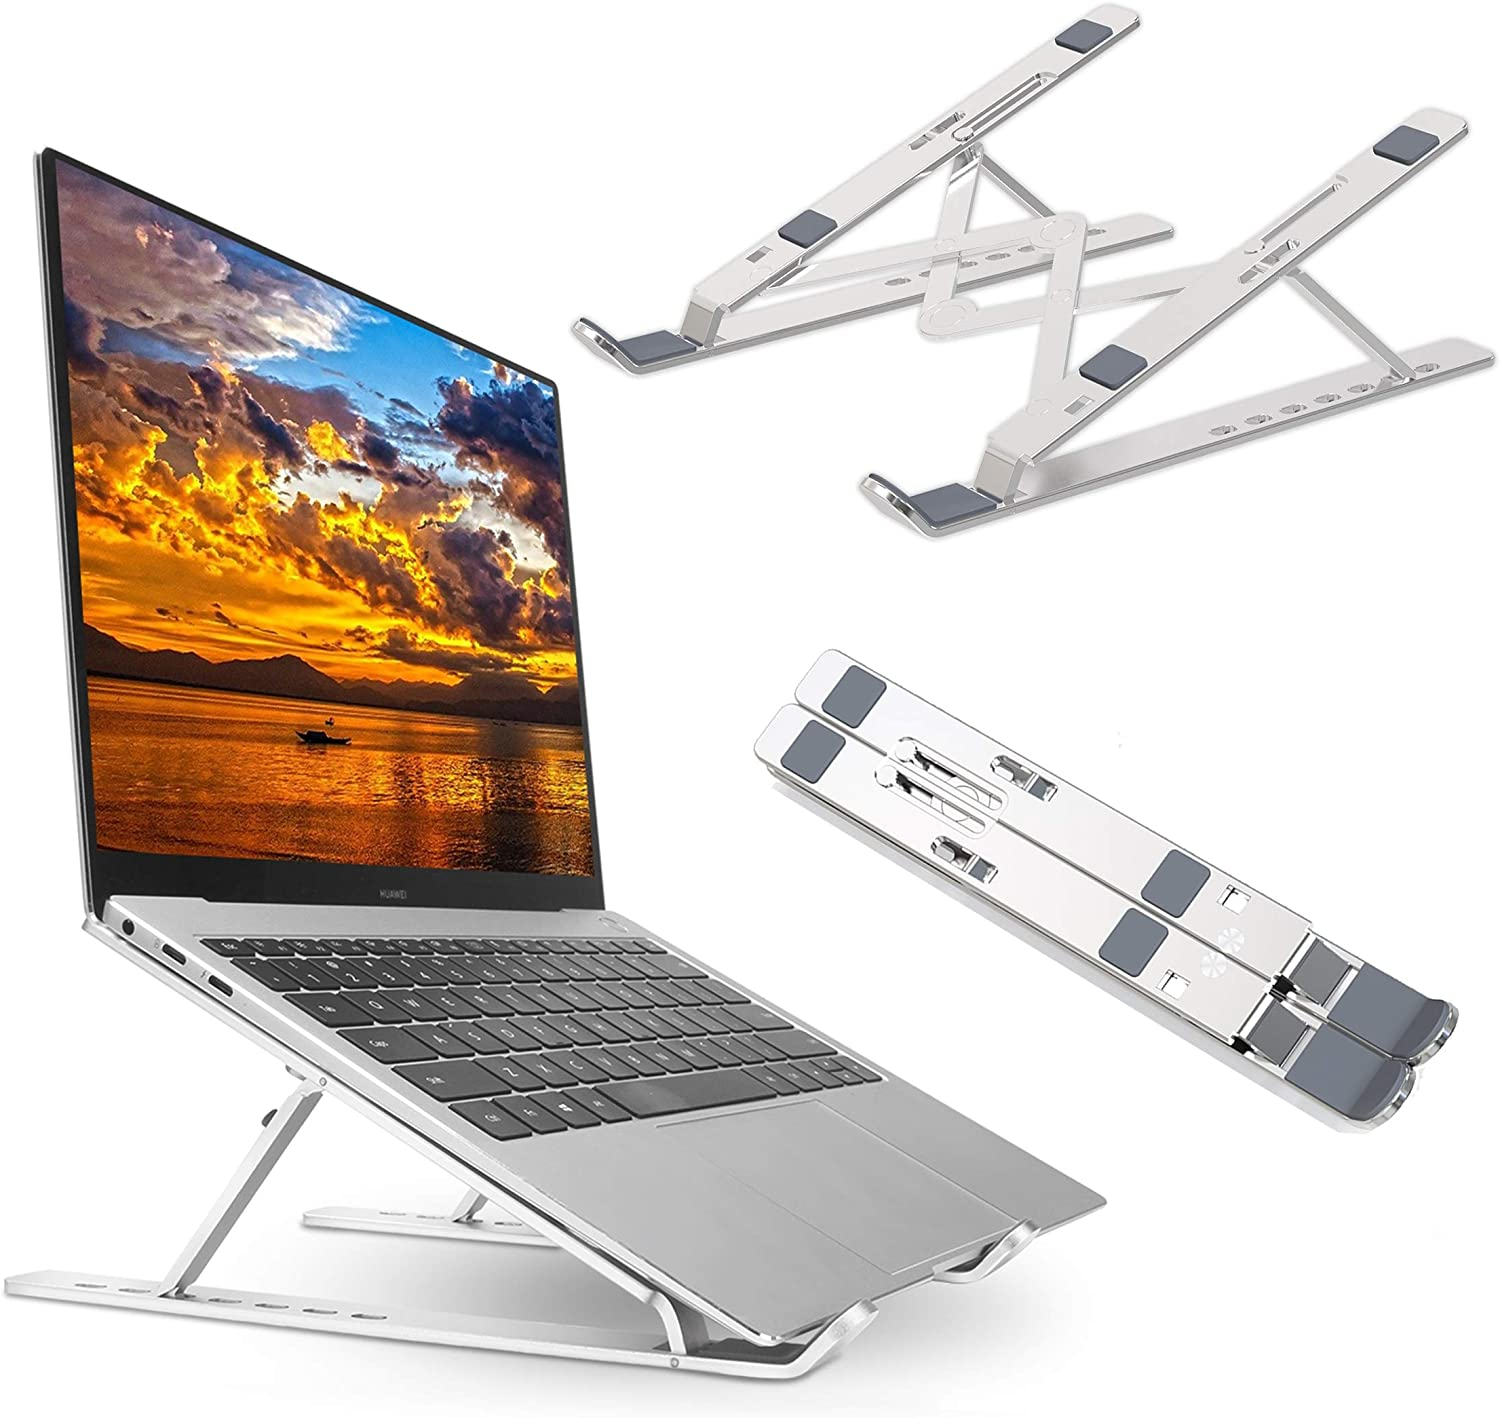 "Adjustable Laptop Stand, Aluminum Laptop Riser Computer Stand, Tablet Stand, Ergonomic Foldable Portable Desktop Holder Compatible with MacBook Air Pro More 10-15.6"" Laptops"